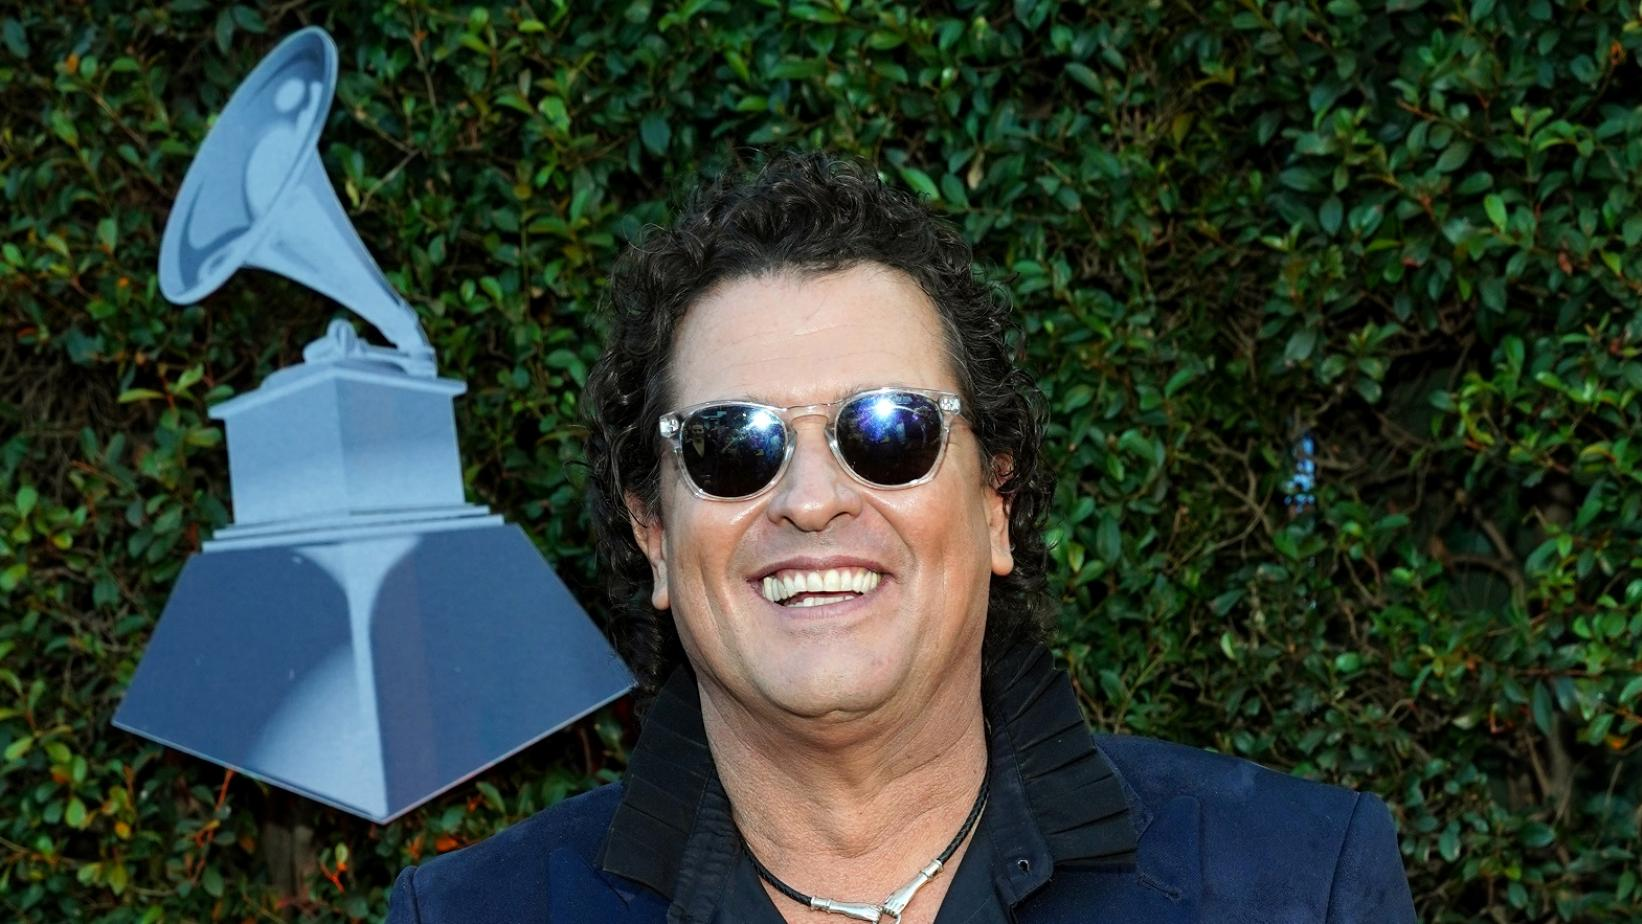 Carlos Vives at the 2018 Latin GRAMMYs